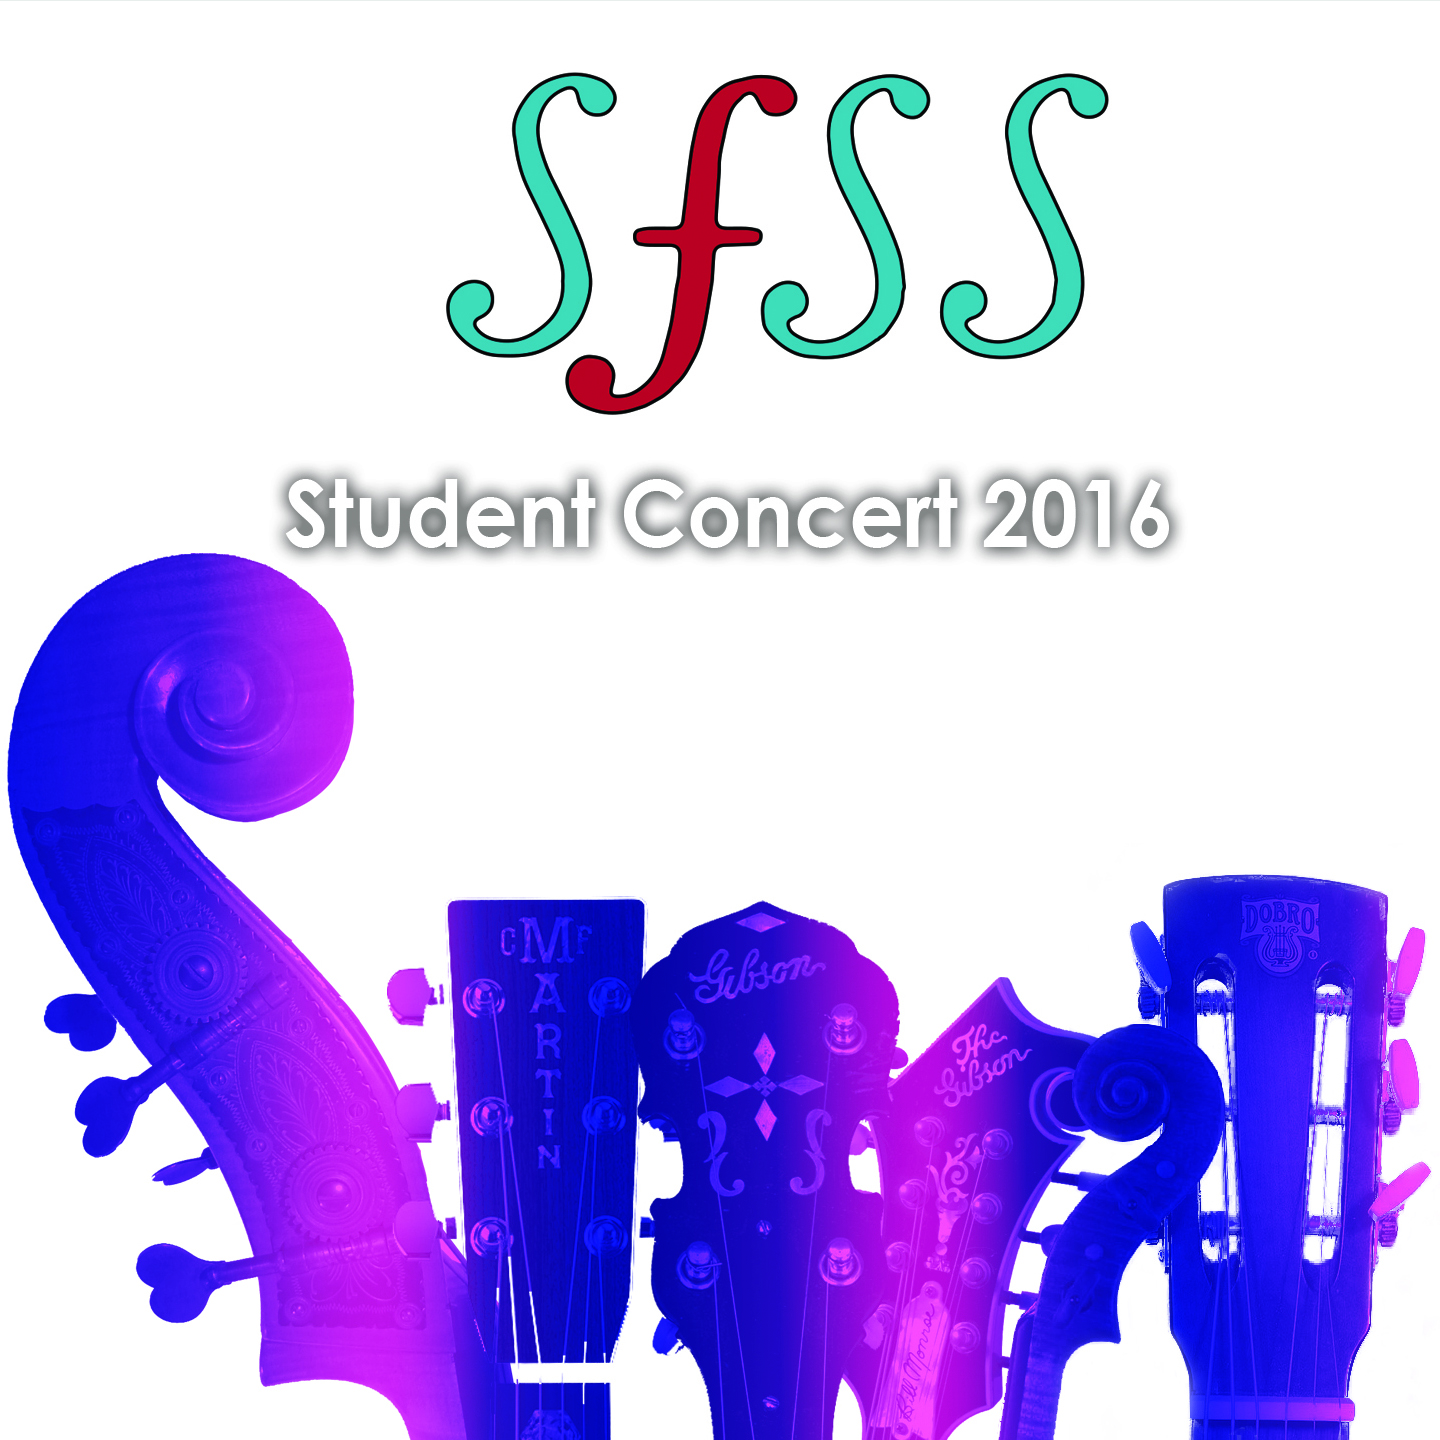 Artist:  Sore Fingers Summer Schools   Title:  Student Concert 2016   Credit:  Recording, Mixing, Mastering   Year:  2016